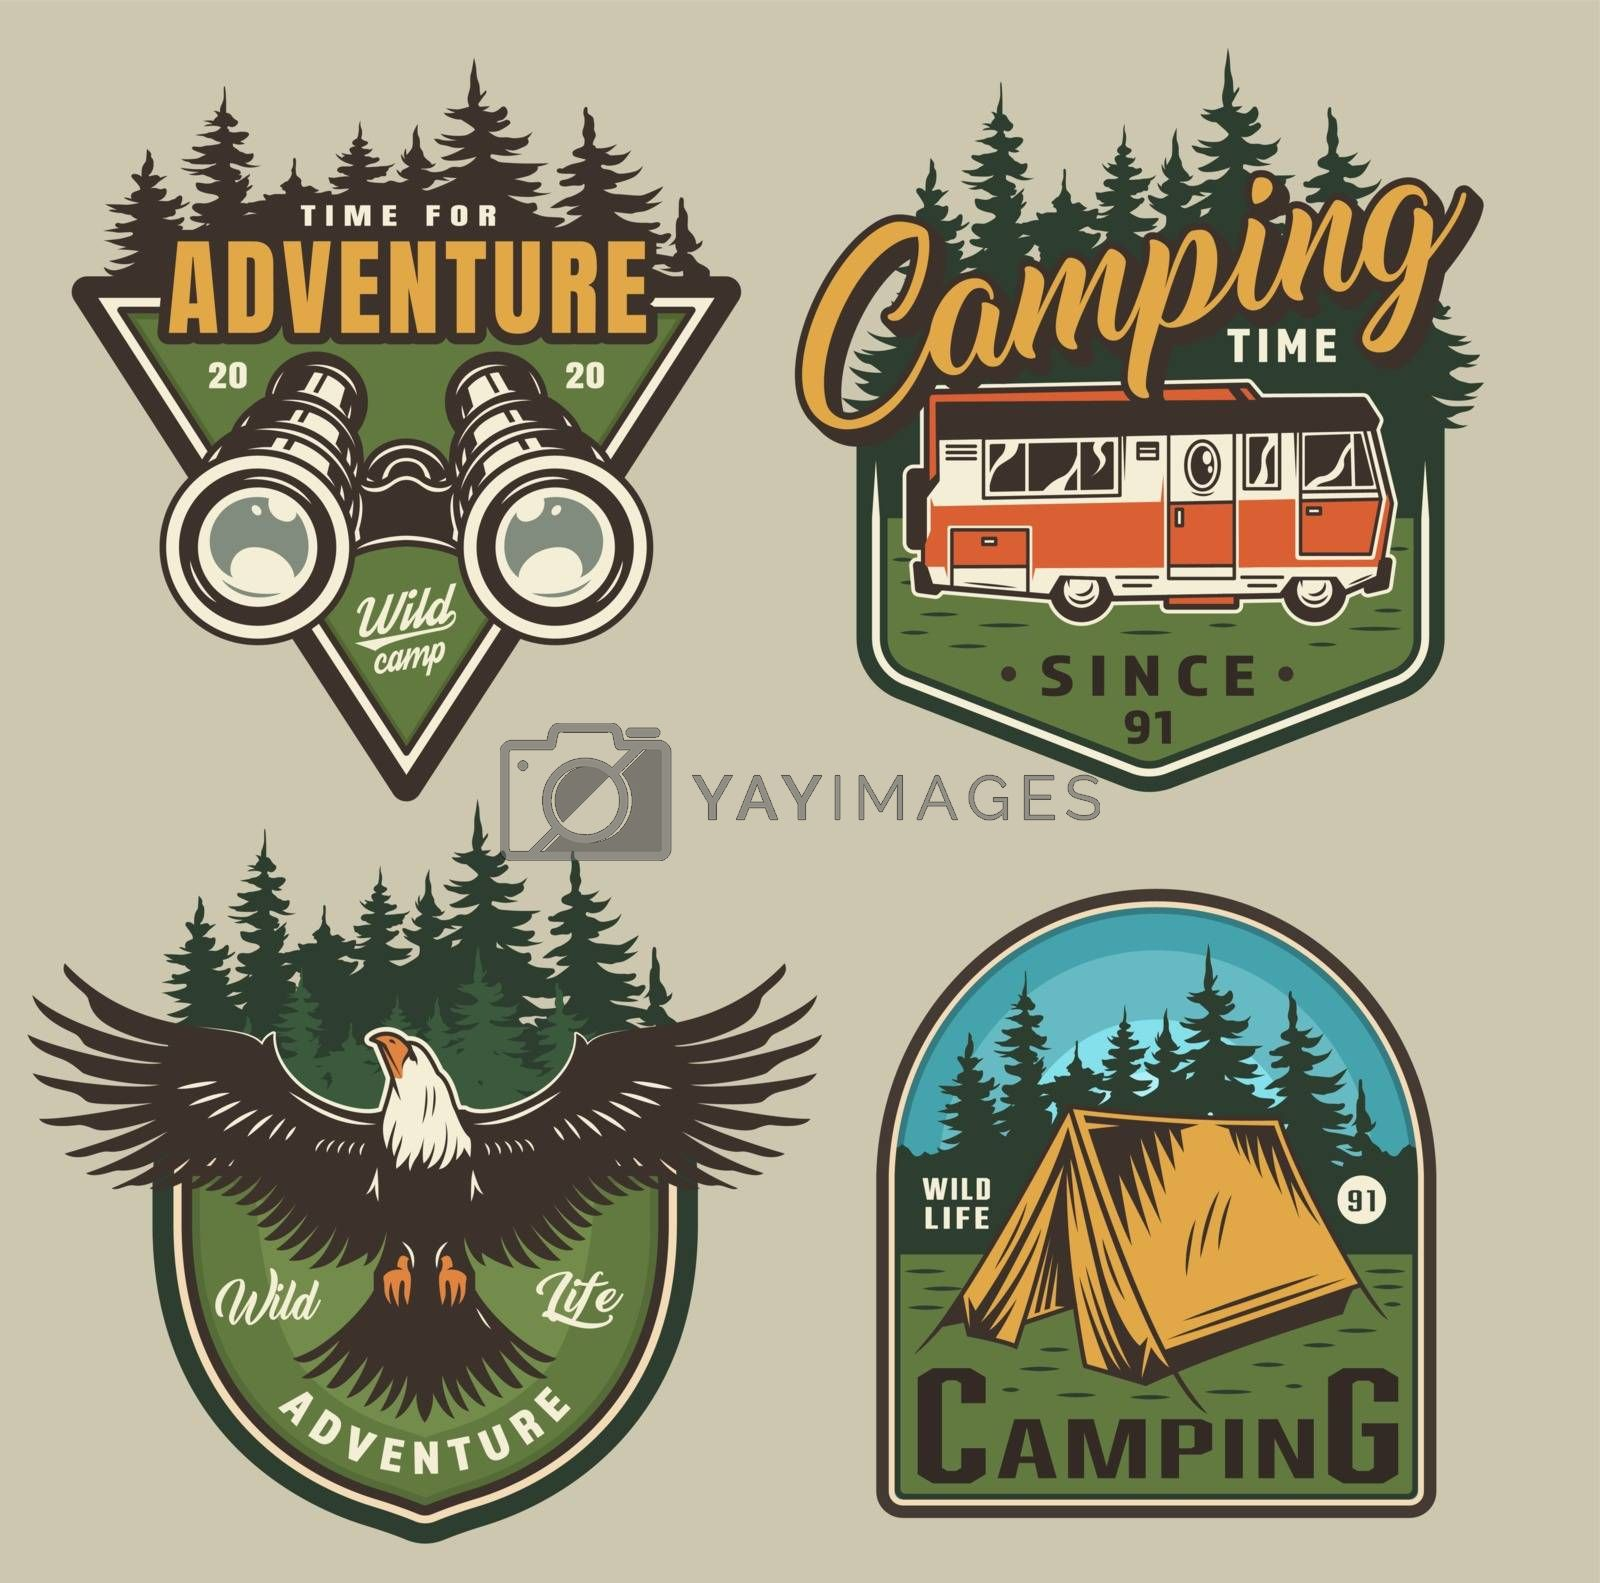 Vintage outdoor recreation colorful logos with binoculars motorhome eagle tent and forest landscapes isolated vector illustration